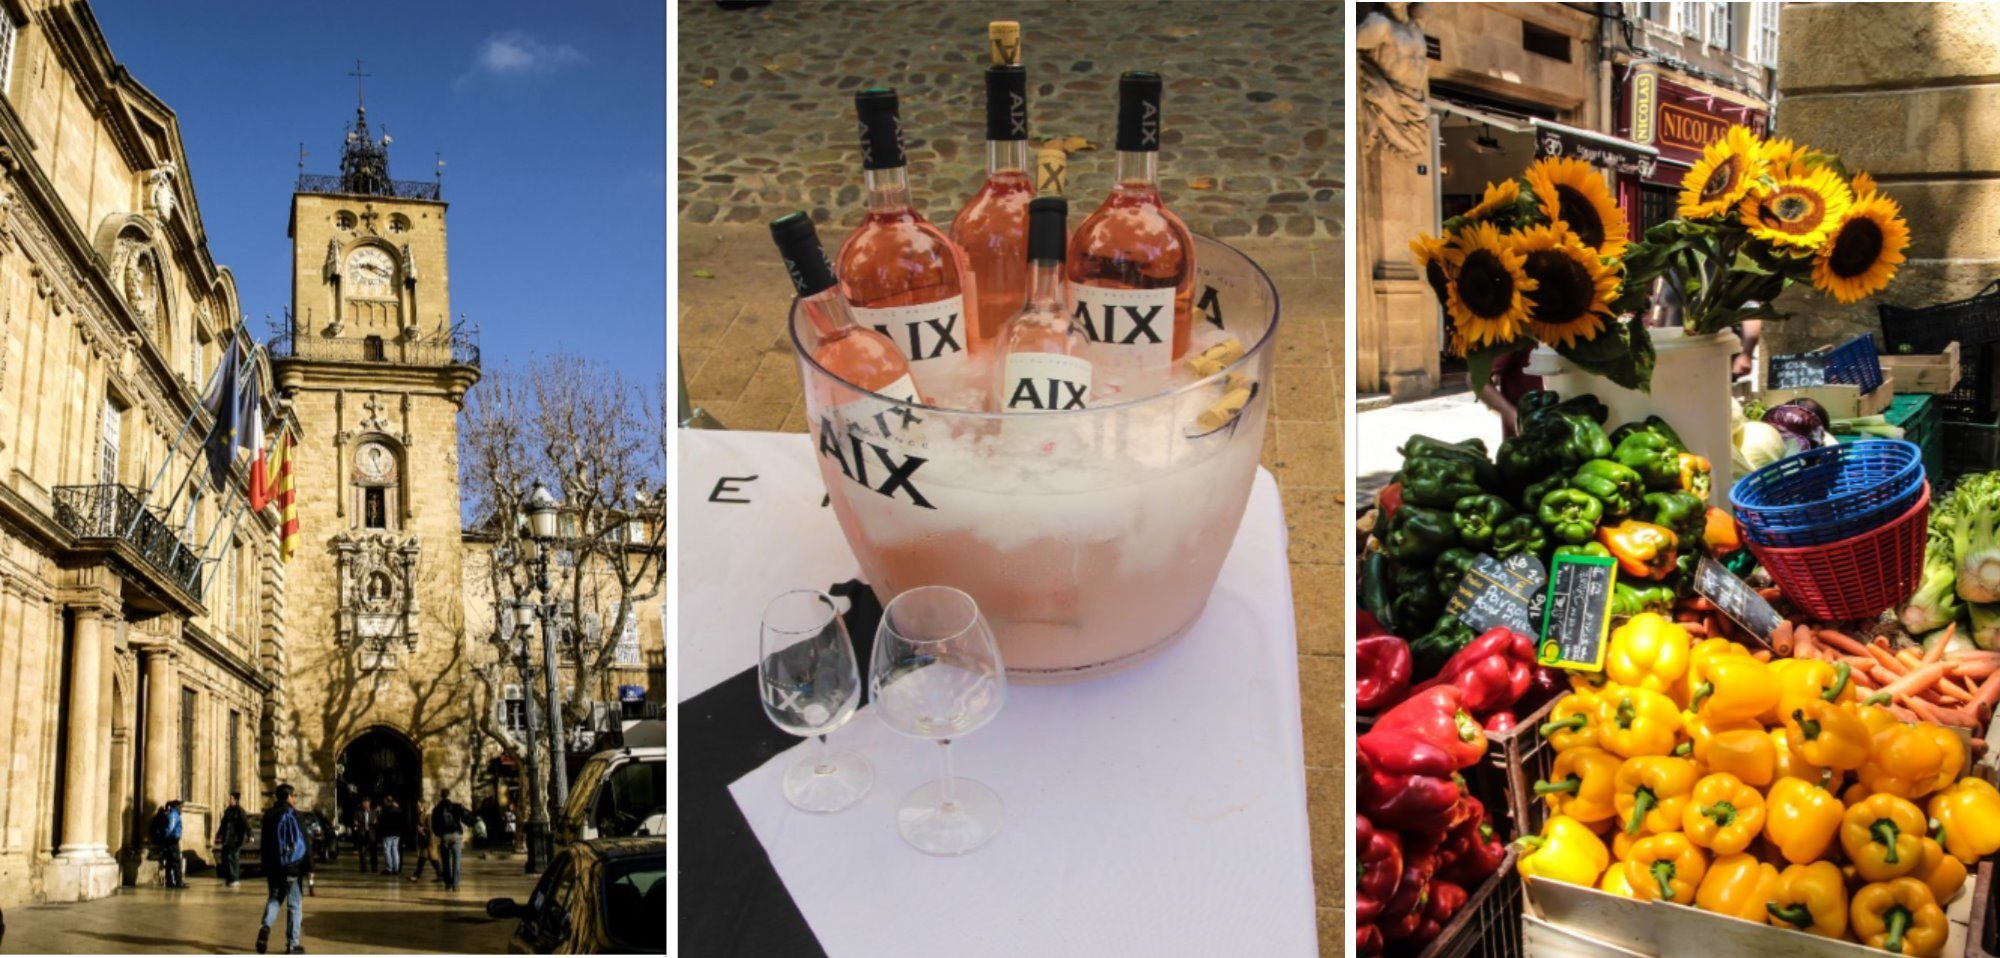 aix-home-page-2